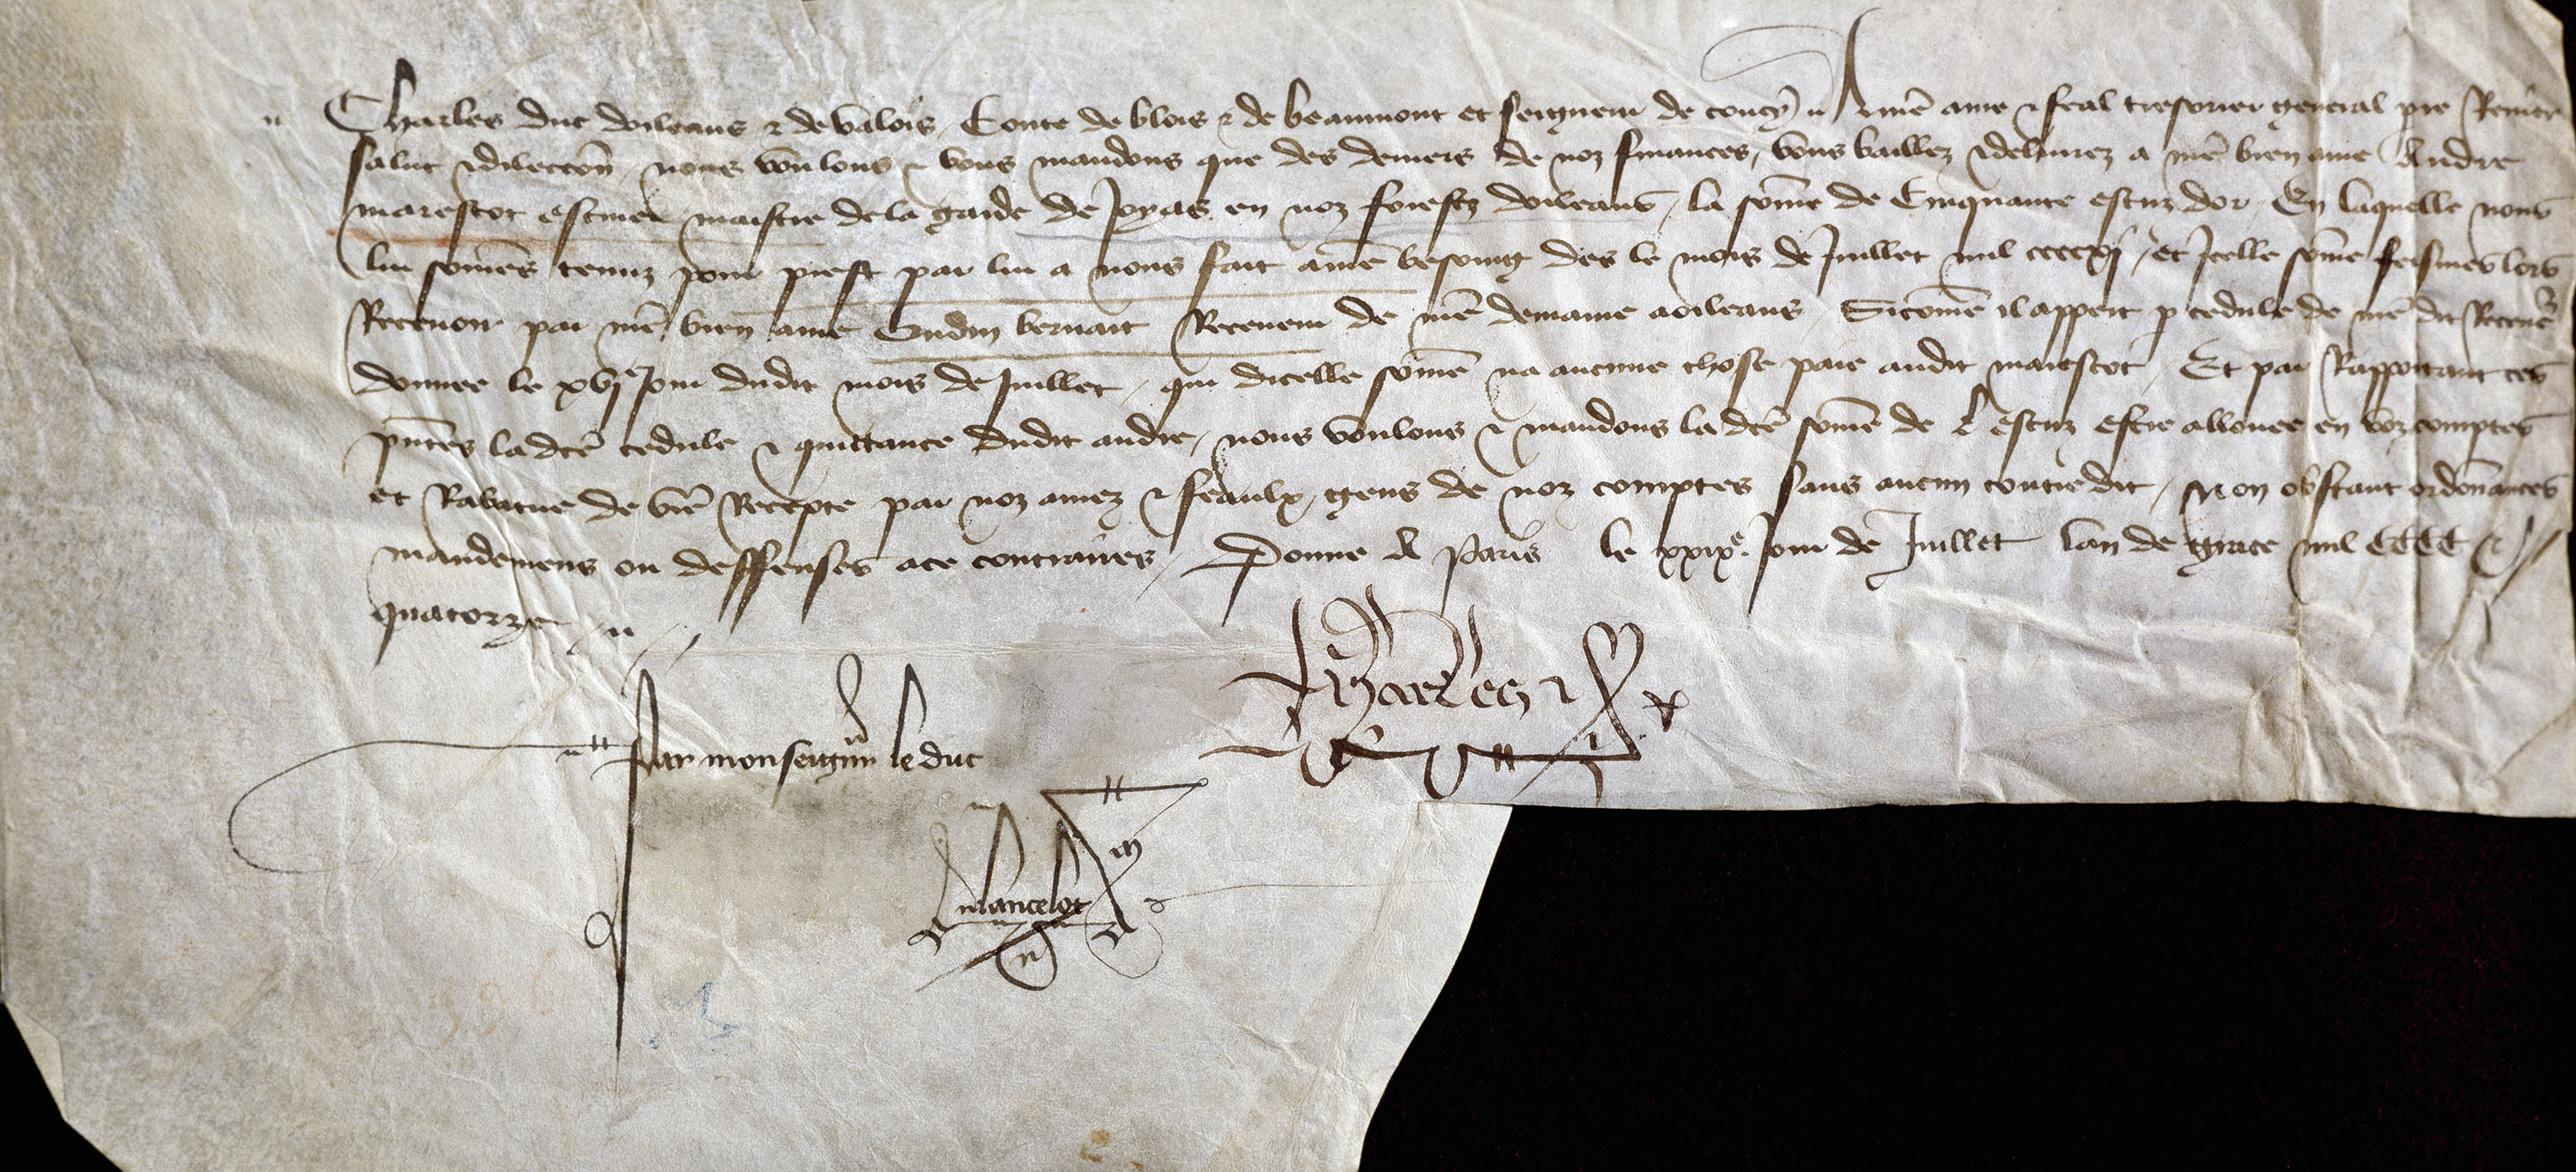 One of the many letters written by Charles Duke of Orleans. (Credit: DeAgostini/Getty Images)